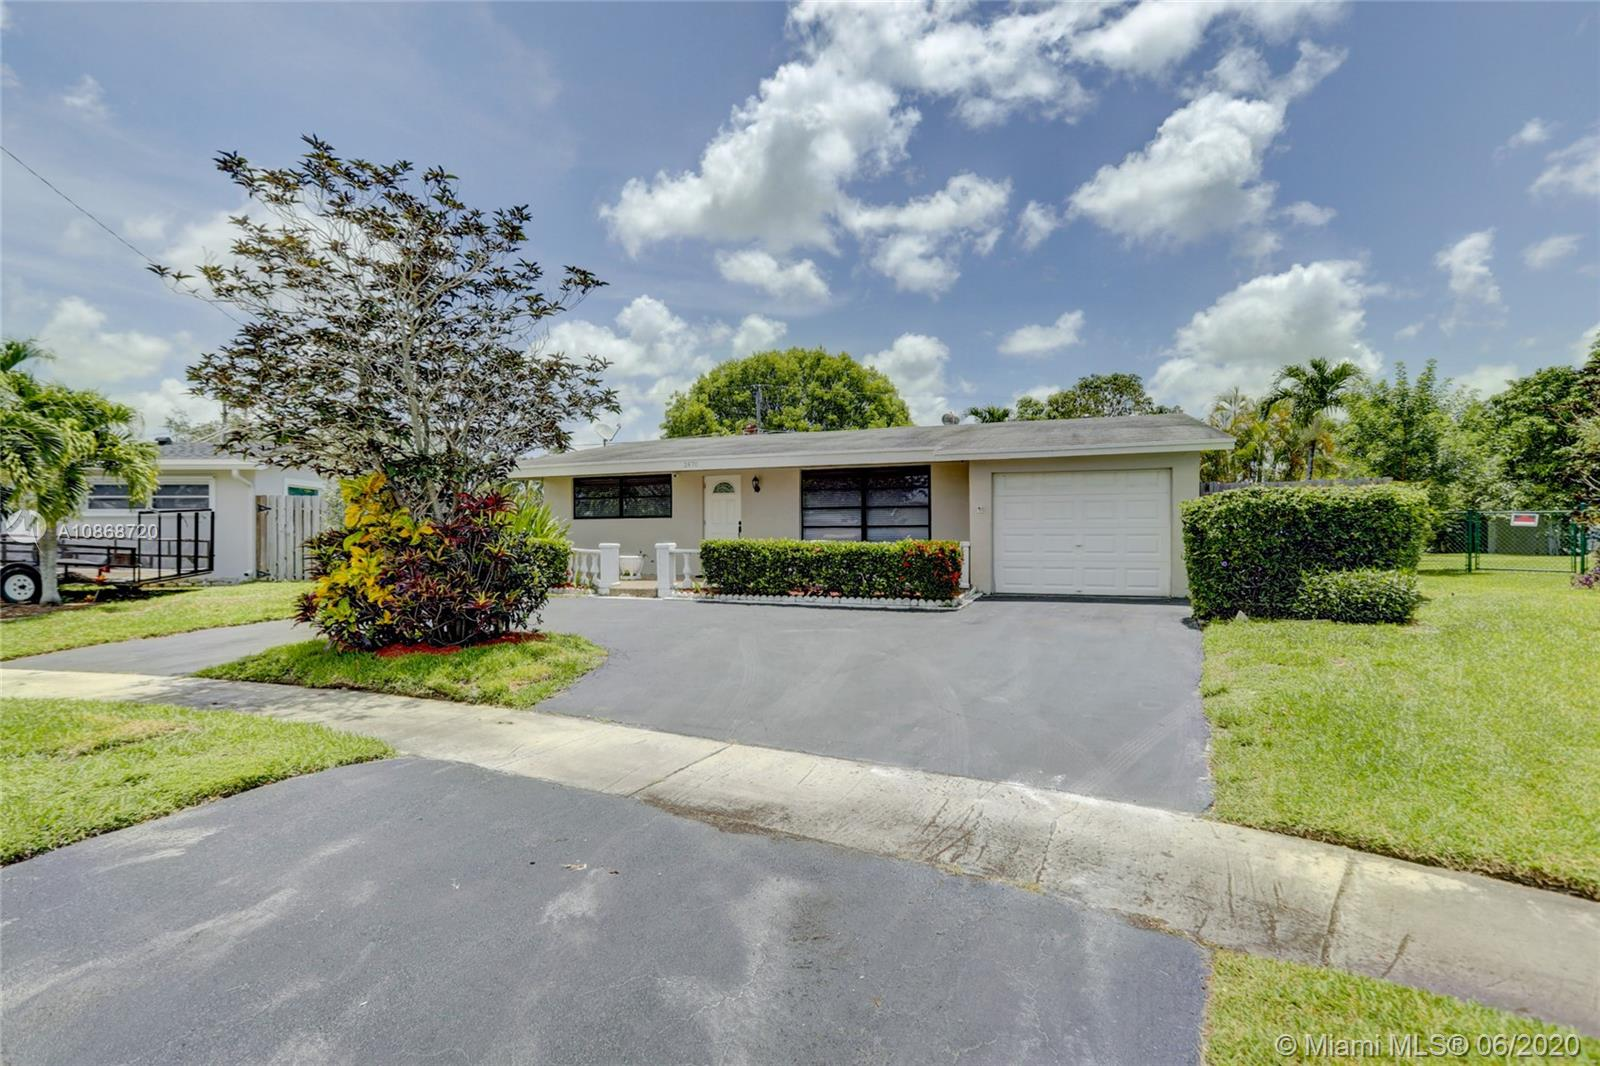 Stunning 2 bedrooms 2 bathroom home, completely remodeled in Sunrise Golf Village! Well positioned on oversized 9800+ sq ft lot! Gorgeous kitchen features white wood cabinetry/pantry with pull out drawers, granite countertops/tile backsplash, stainless steel appliances & gas range. Real dark wood flooring throughout main living areas & bedrooms. Open layout with tons of natural light. Great for entertaining. Recessed lighting. 1 car garage. Huge lot with great privacy. Circular driveway. Updated General Electric Panel. AC 2012. Water Heater 2015. Roof 2006. No HOA. This home is a must see!